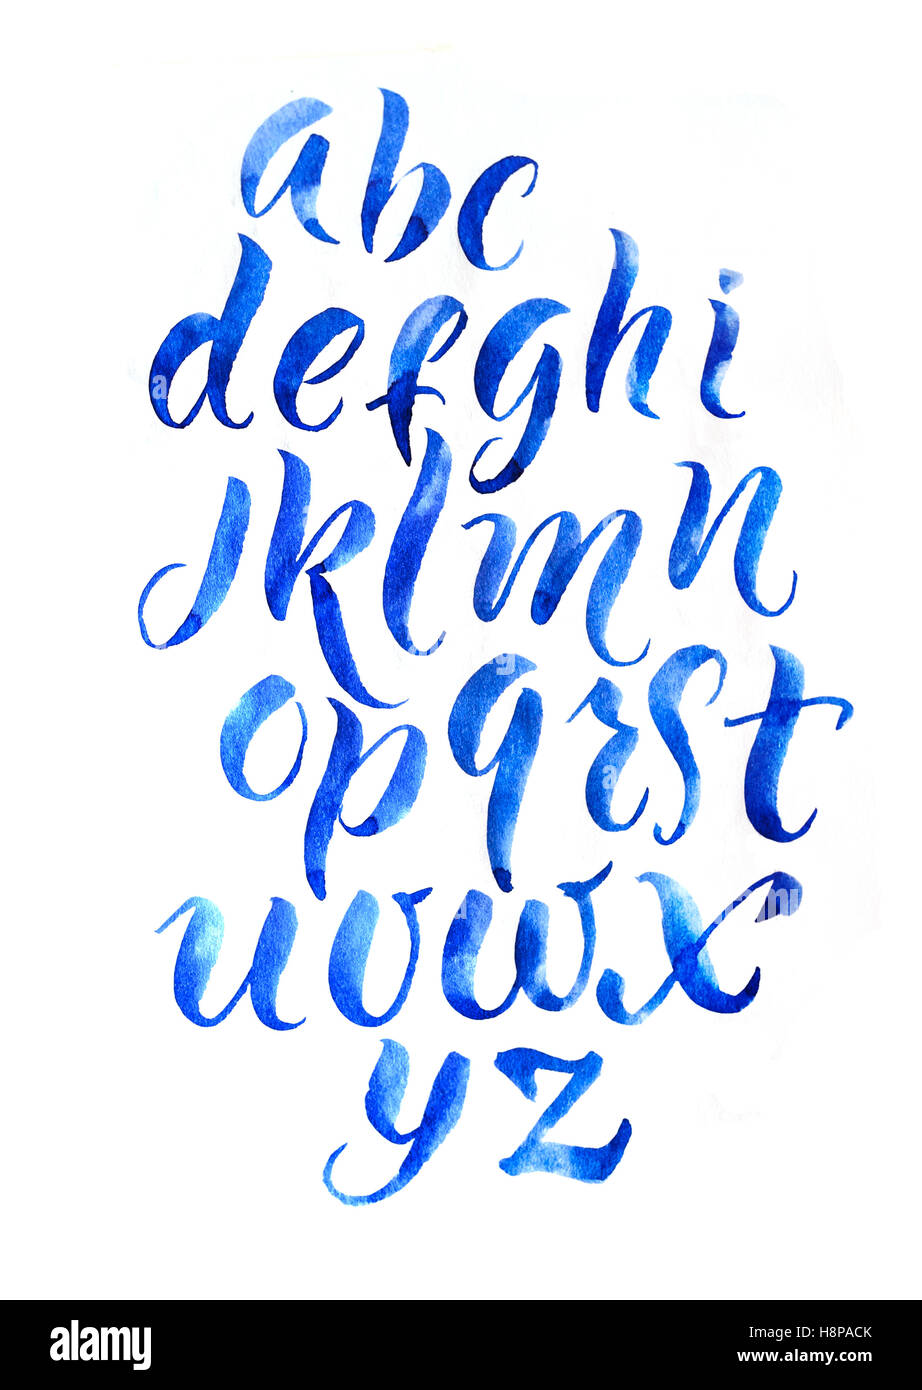 Alphabet Bubble Letter Font